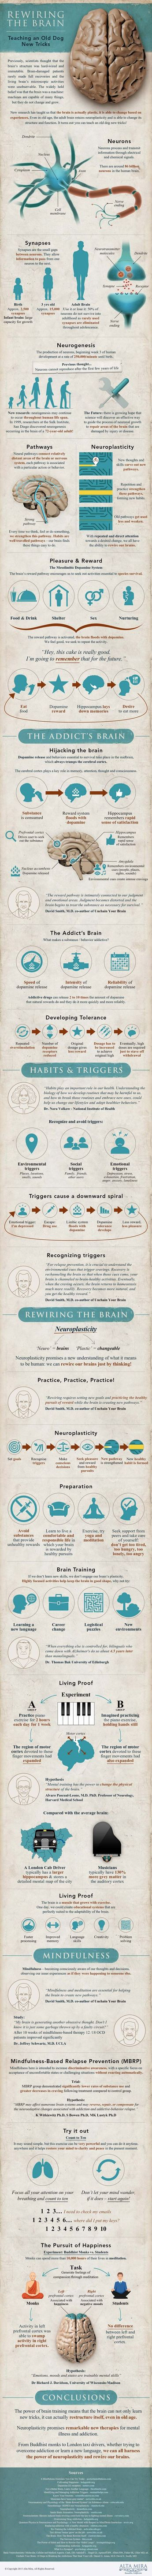 An Infographic To Tell You How Your Brain Works And How To Train It